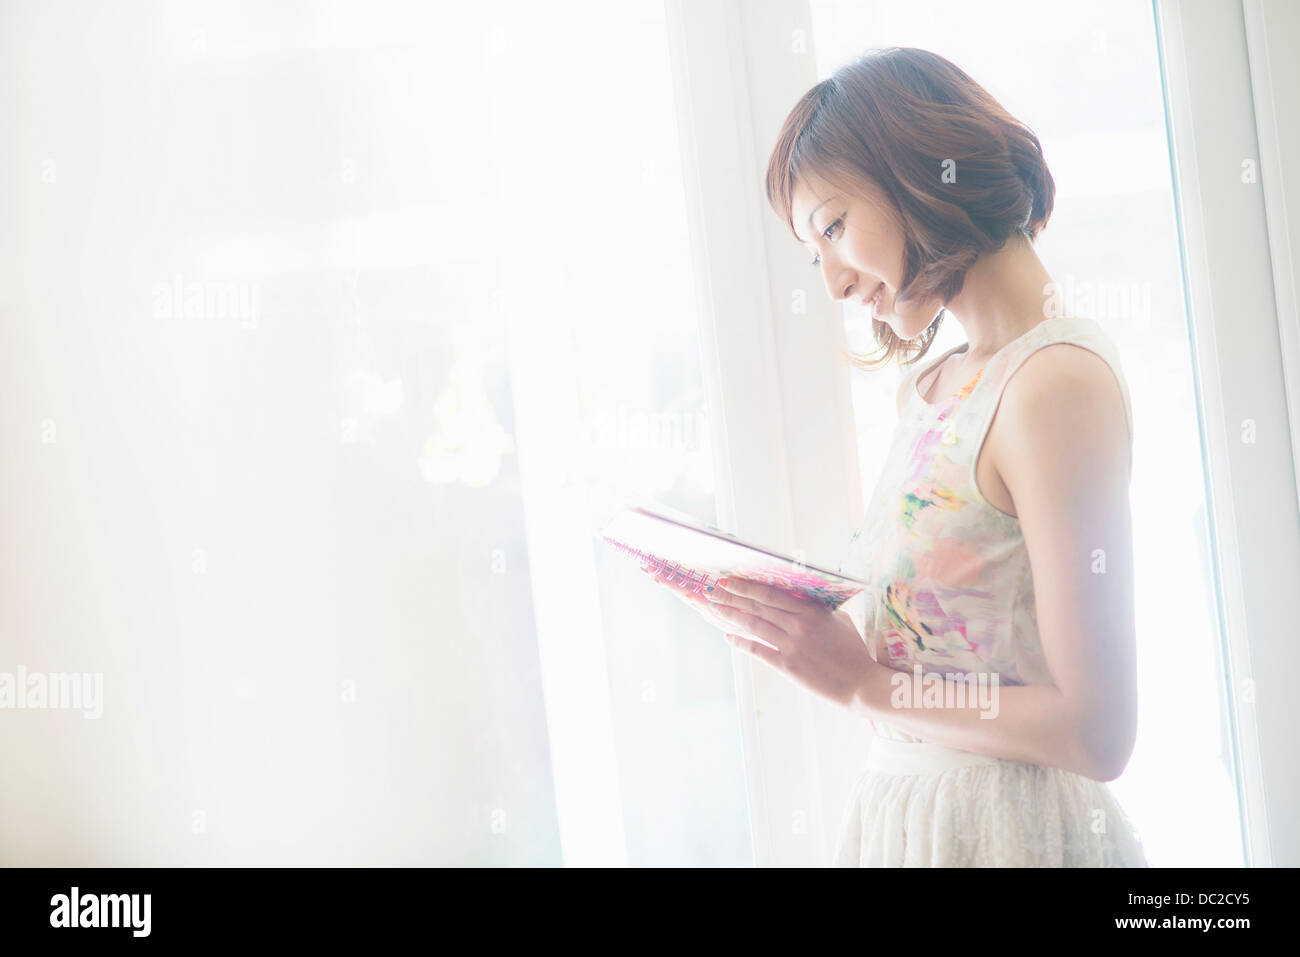 Woman smiling and reading book - Stock Image